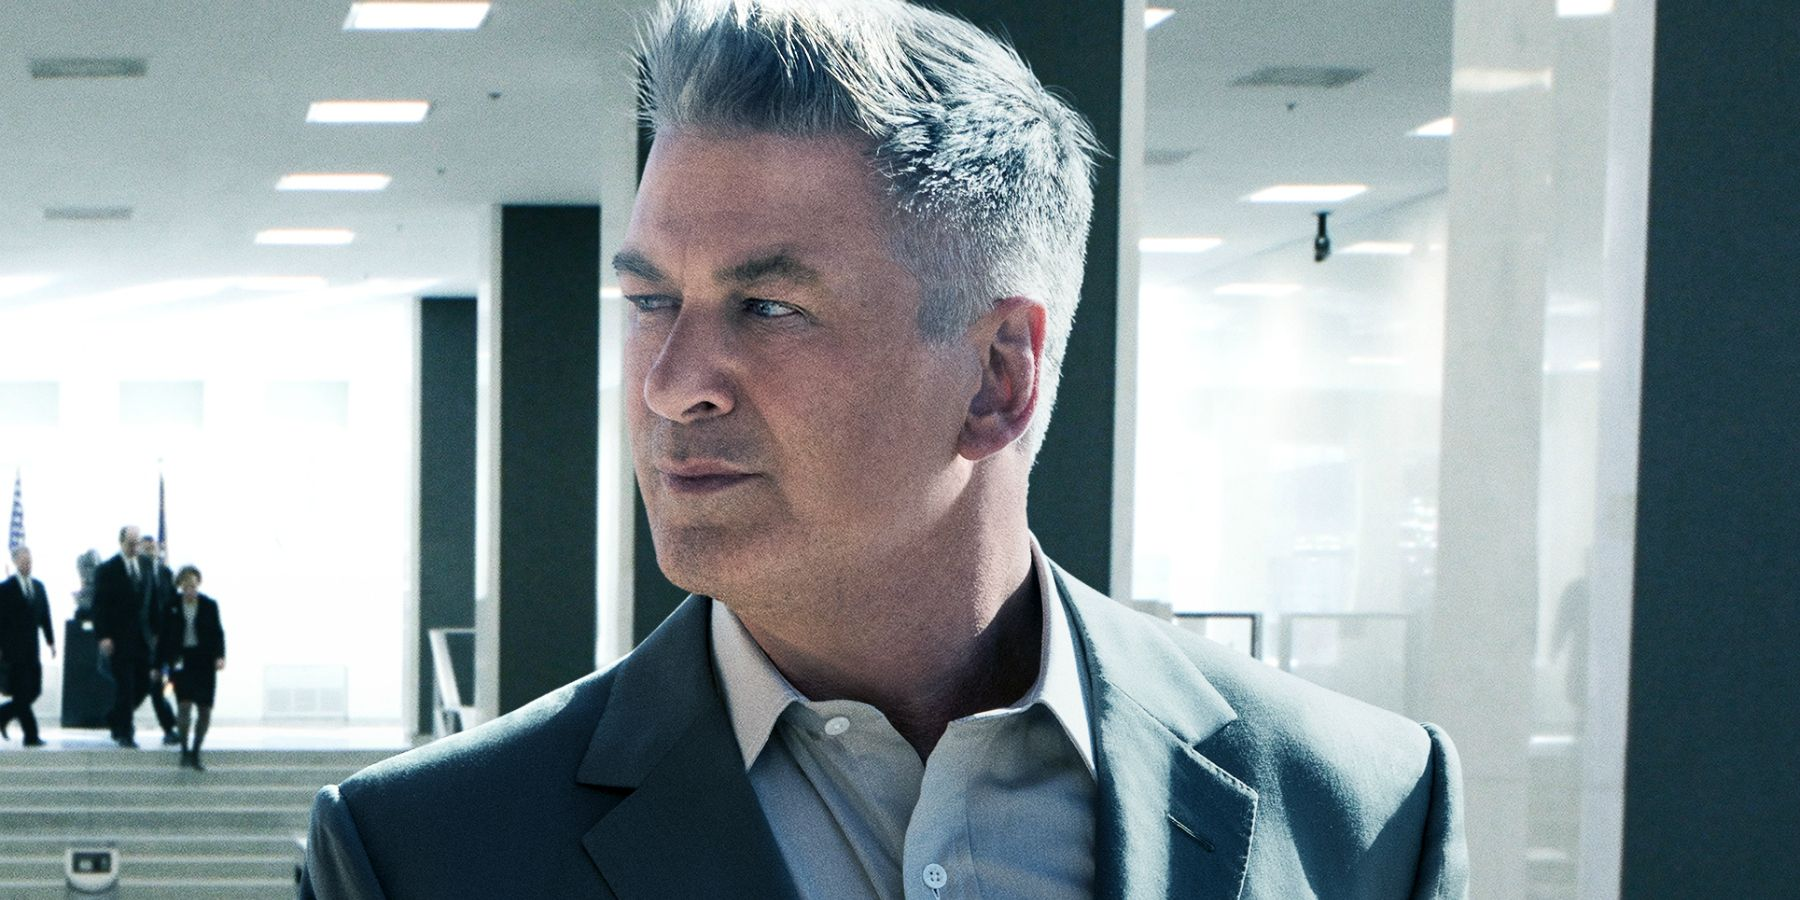 Alec Baldwin Arrested, Charged With Assault In NYC